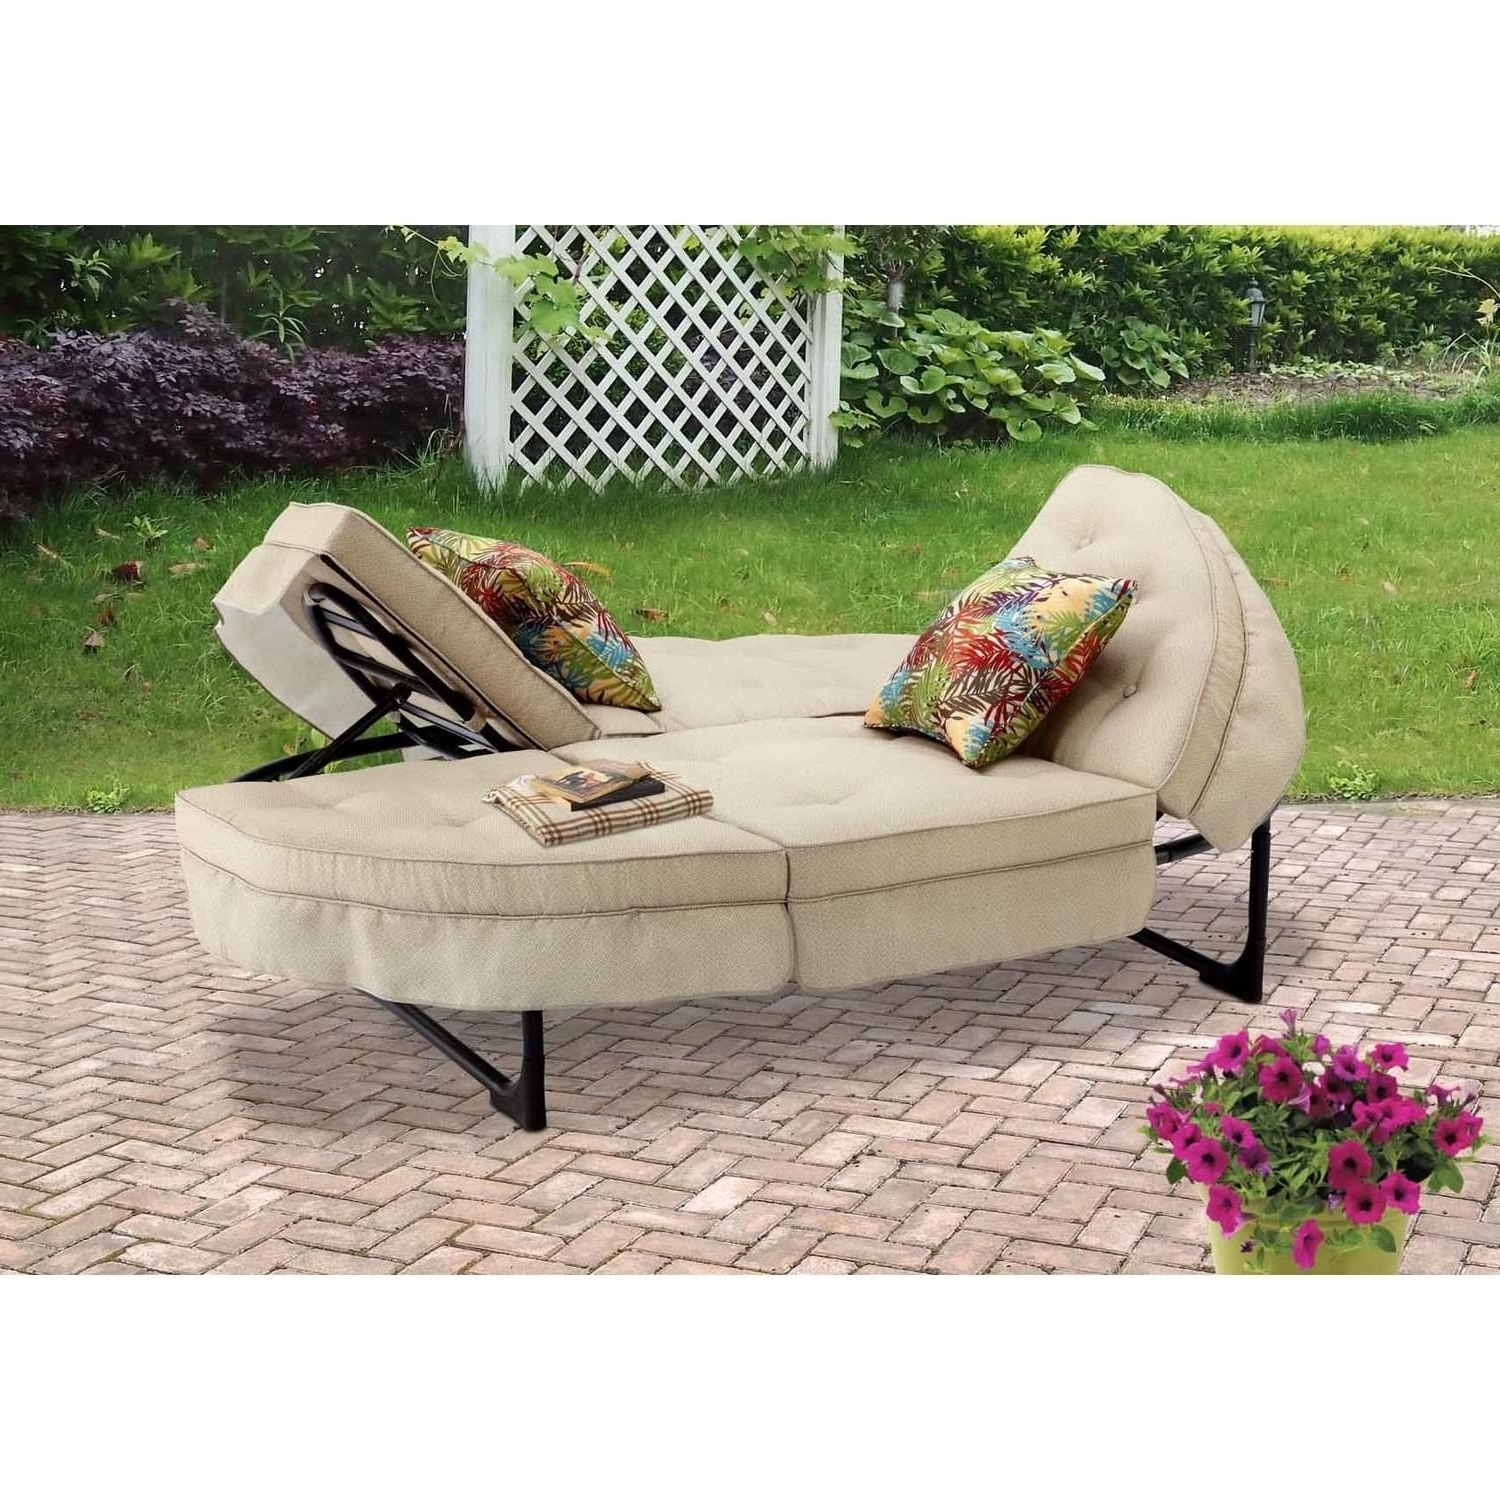 Most Popular Walmart Outdoor Chaise Lounges For Cosco Outdoor Adjustable Aluminum Chaise Lounge Chair Serene Ridge (View 6 of 15)